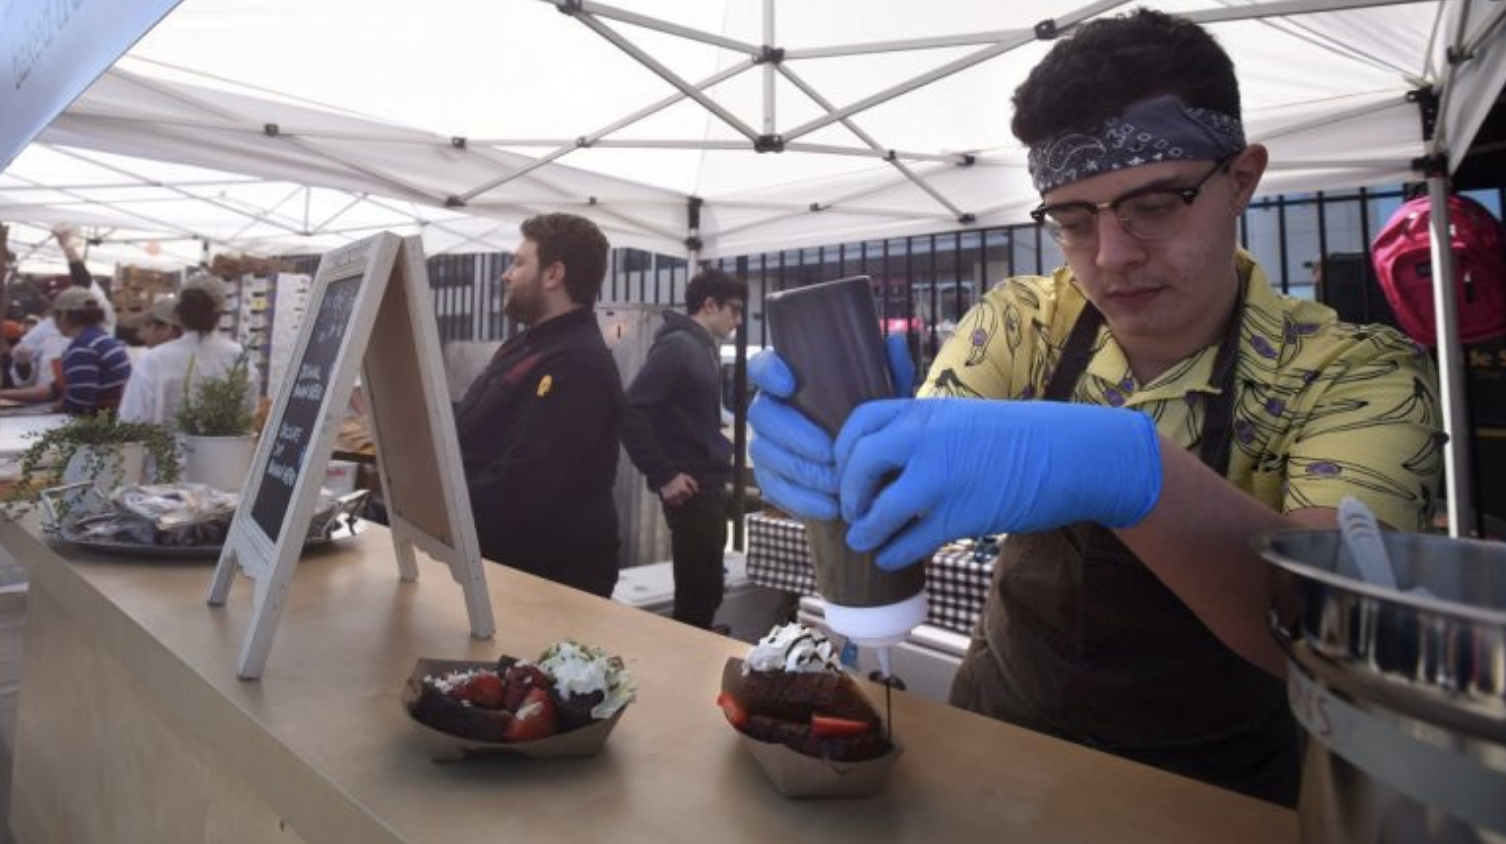 Smorgasburg newcomer is 14-year-old Jack Greenleaf - To read more check out the AM New York article.